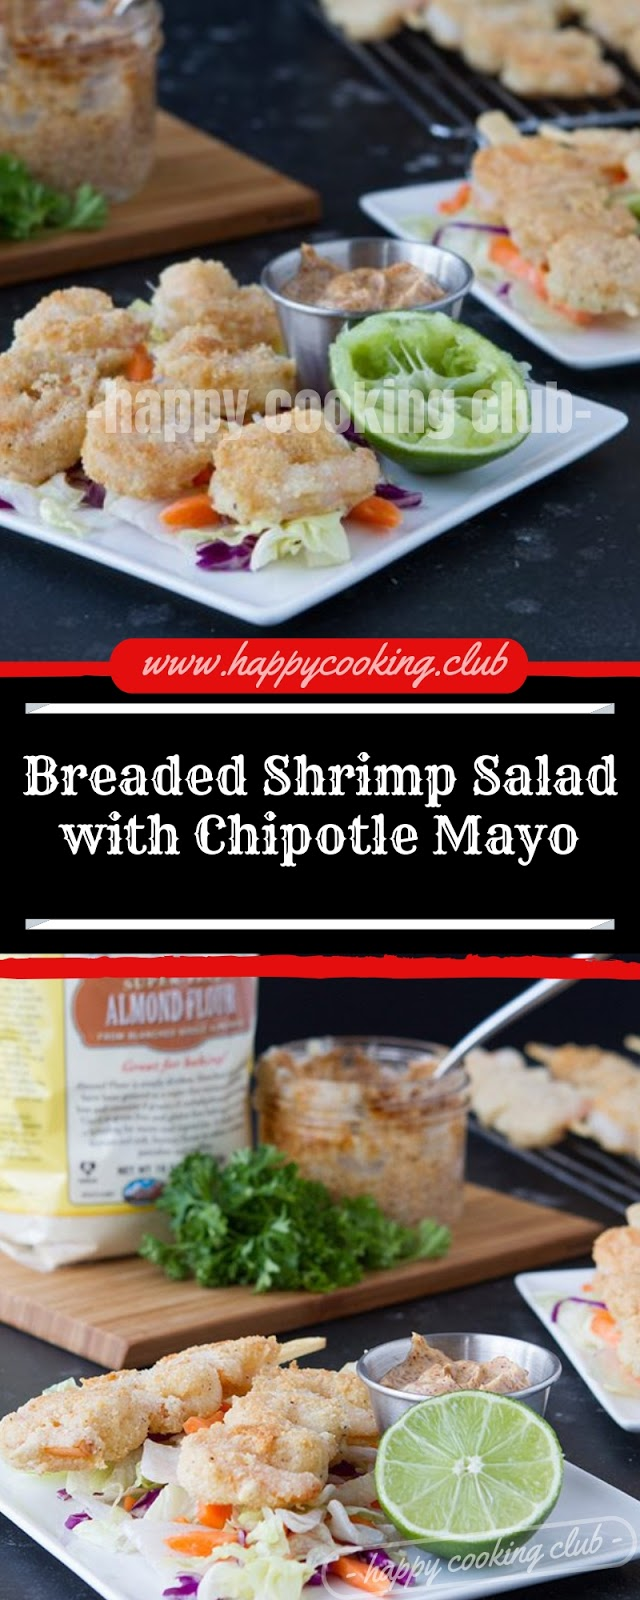 Breaded Shrimp Salad with Chipotle Mayo